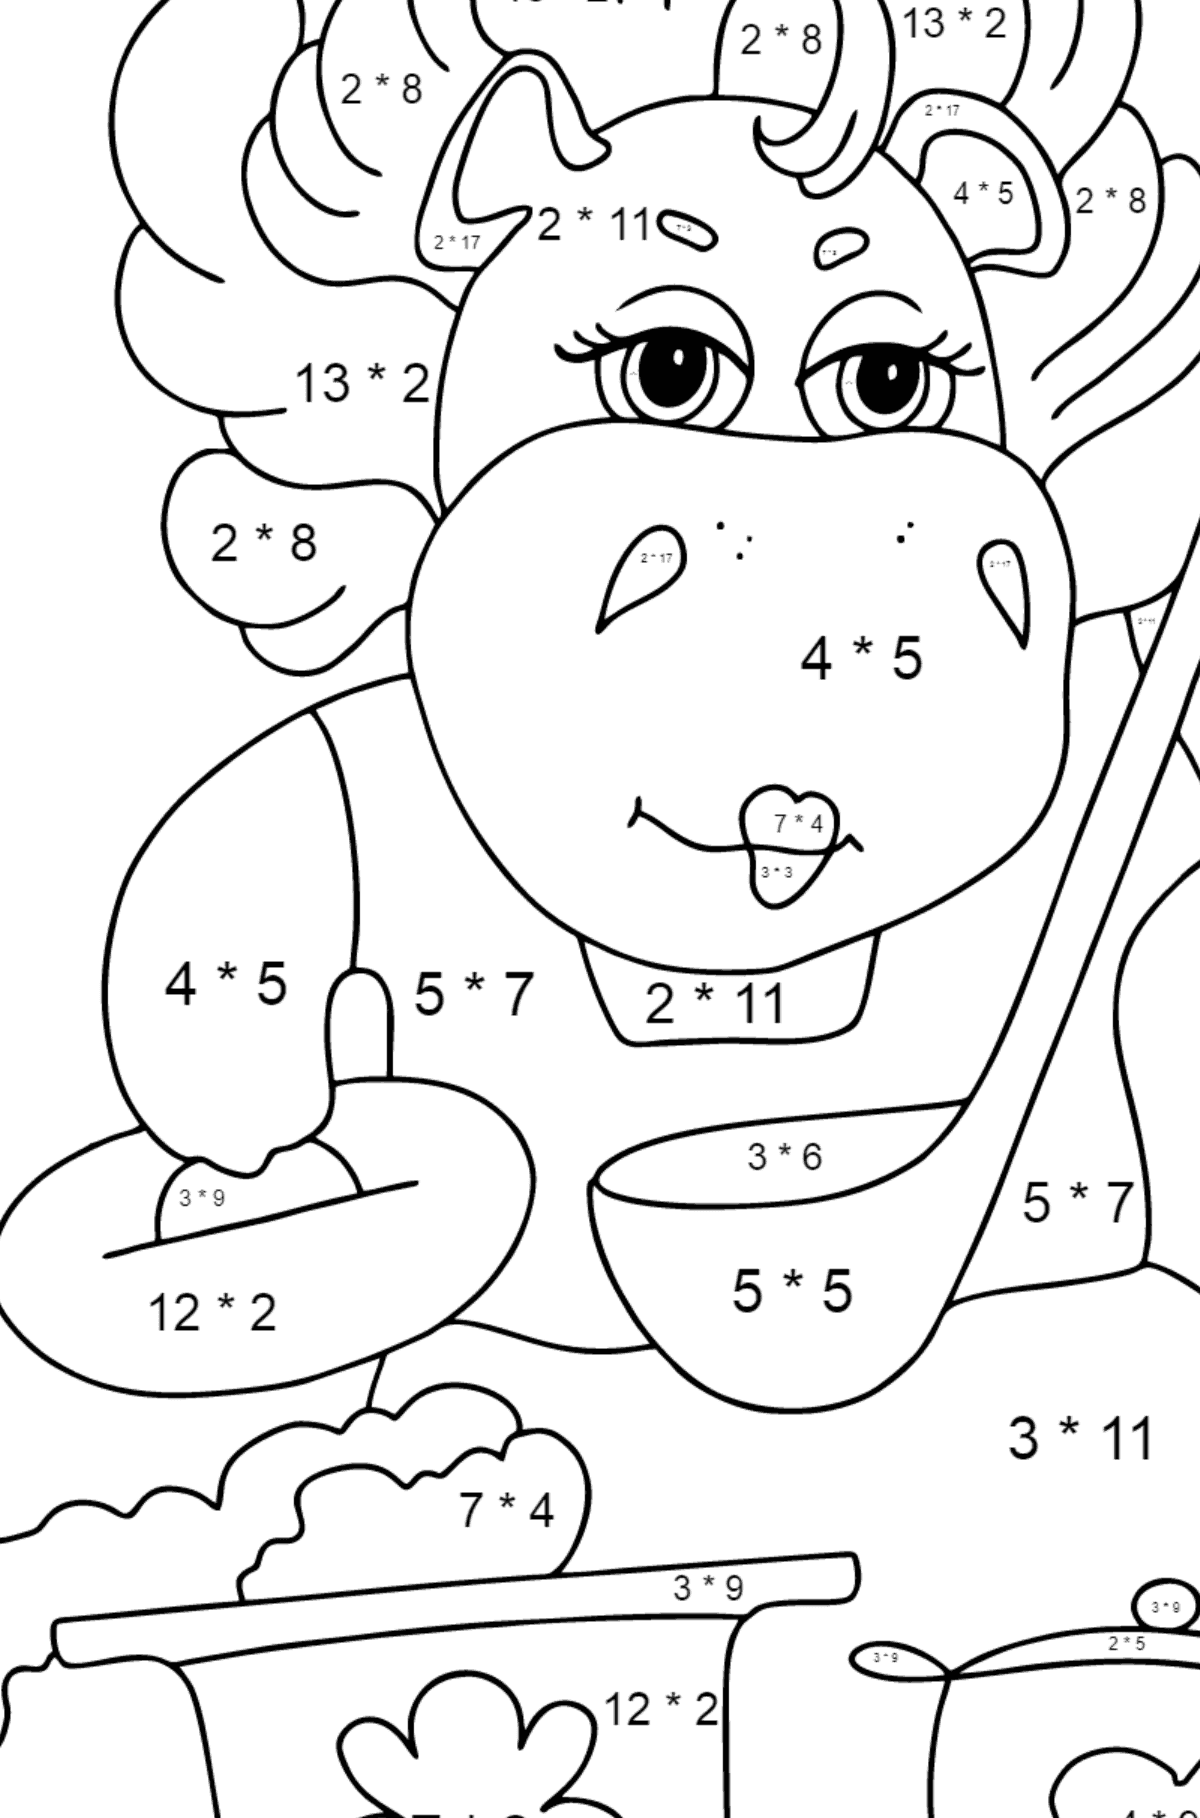 Coloring Page - A Hippo is Cooking a Tasty Lunch for Kids  - Color by Number Multiplication